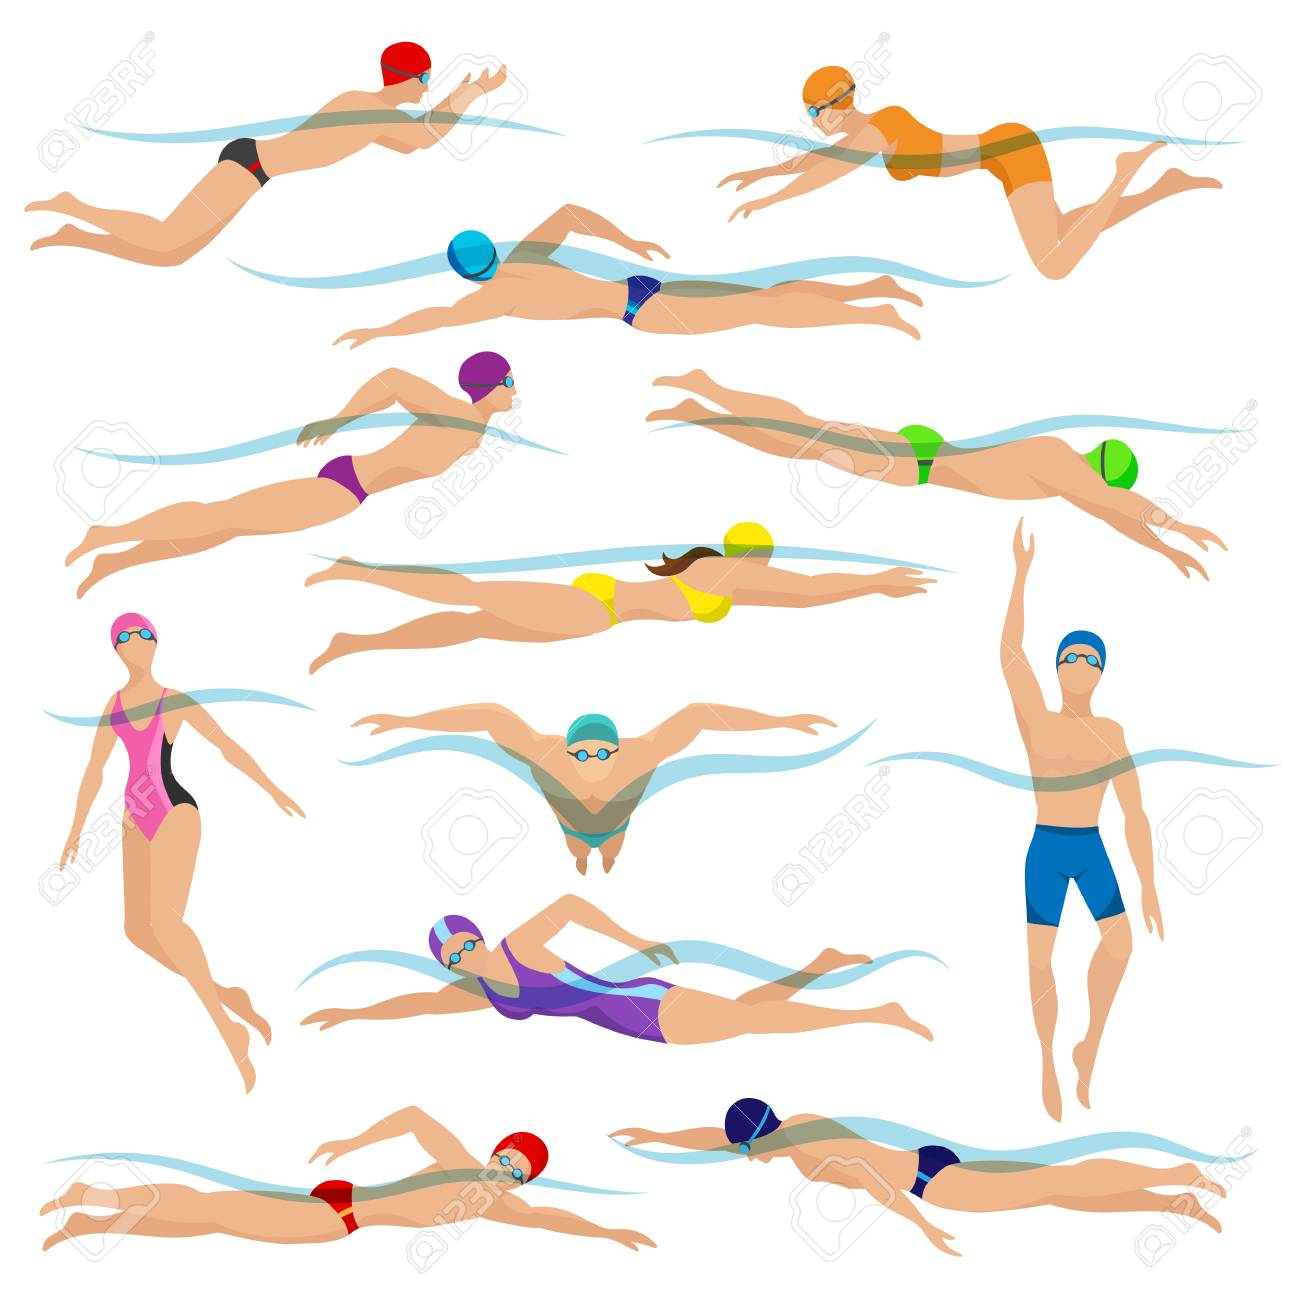 Swimmers vector. Various characters swimming people in action poses, sport man swim action - 126481149